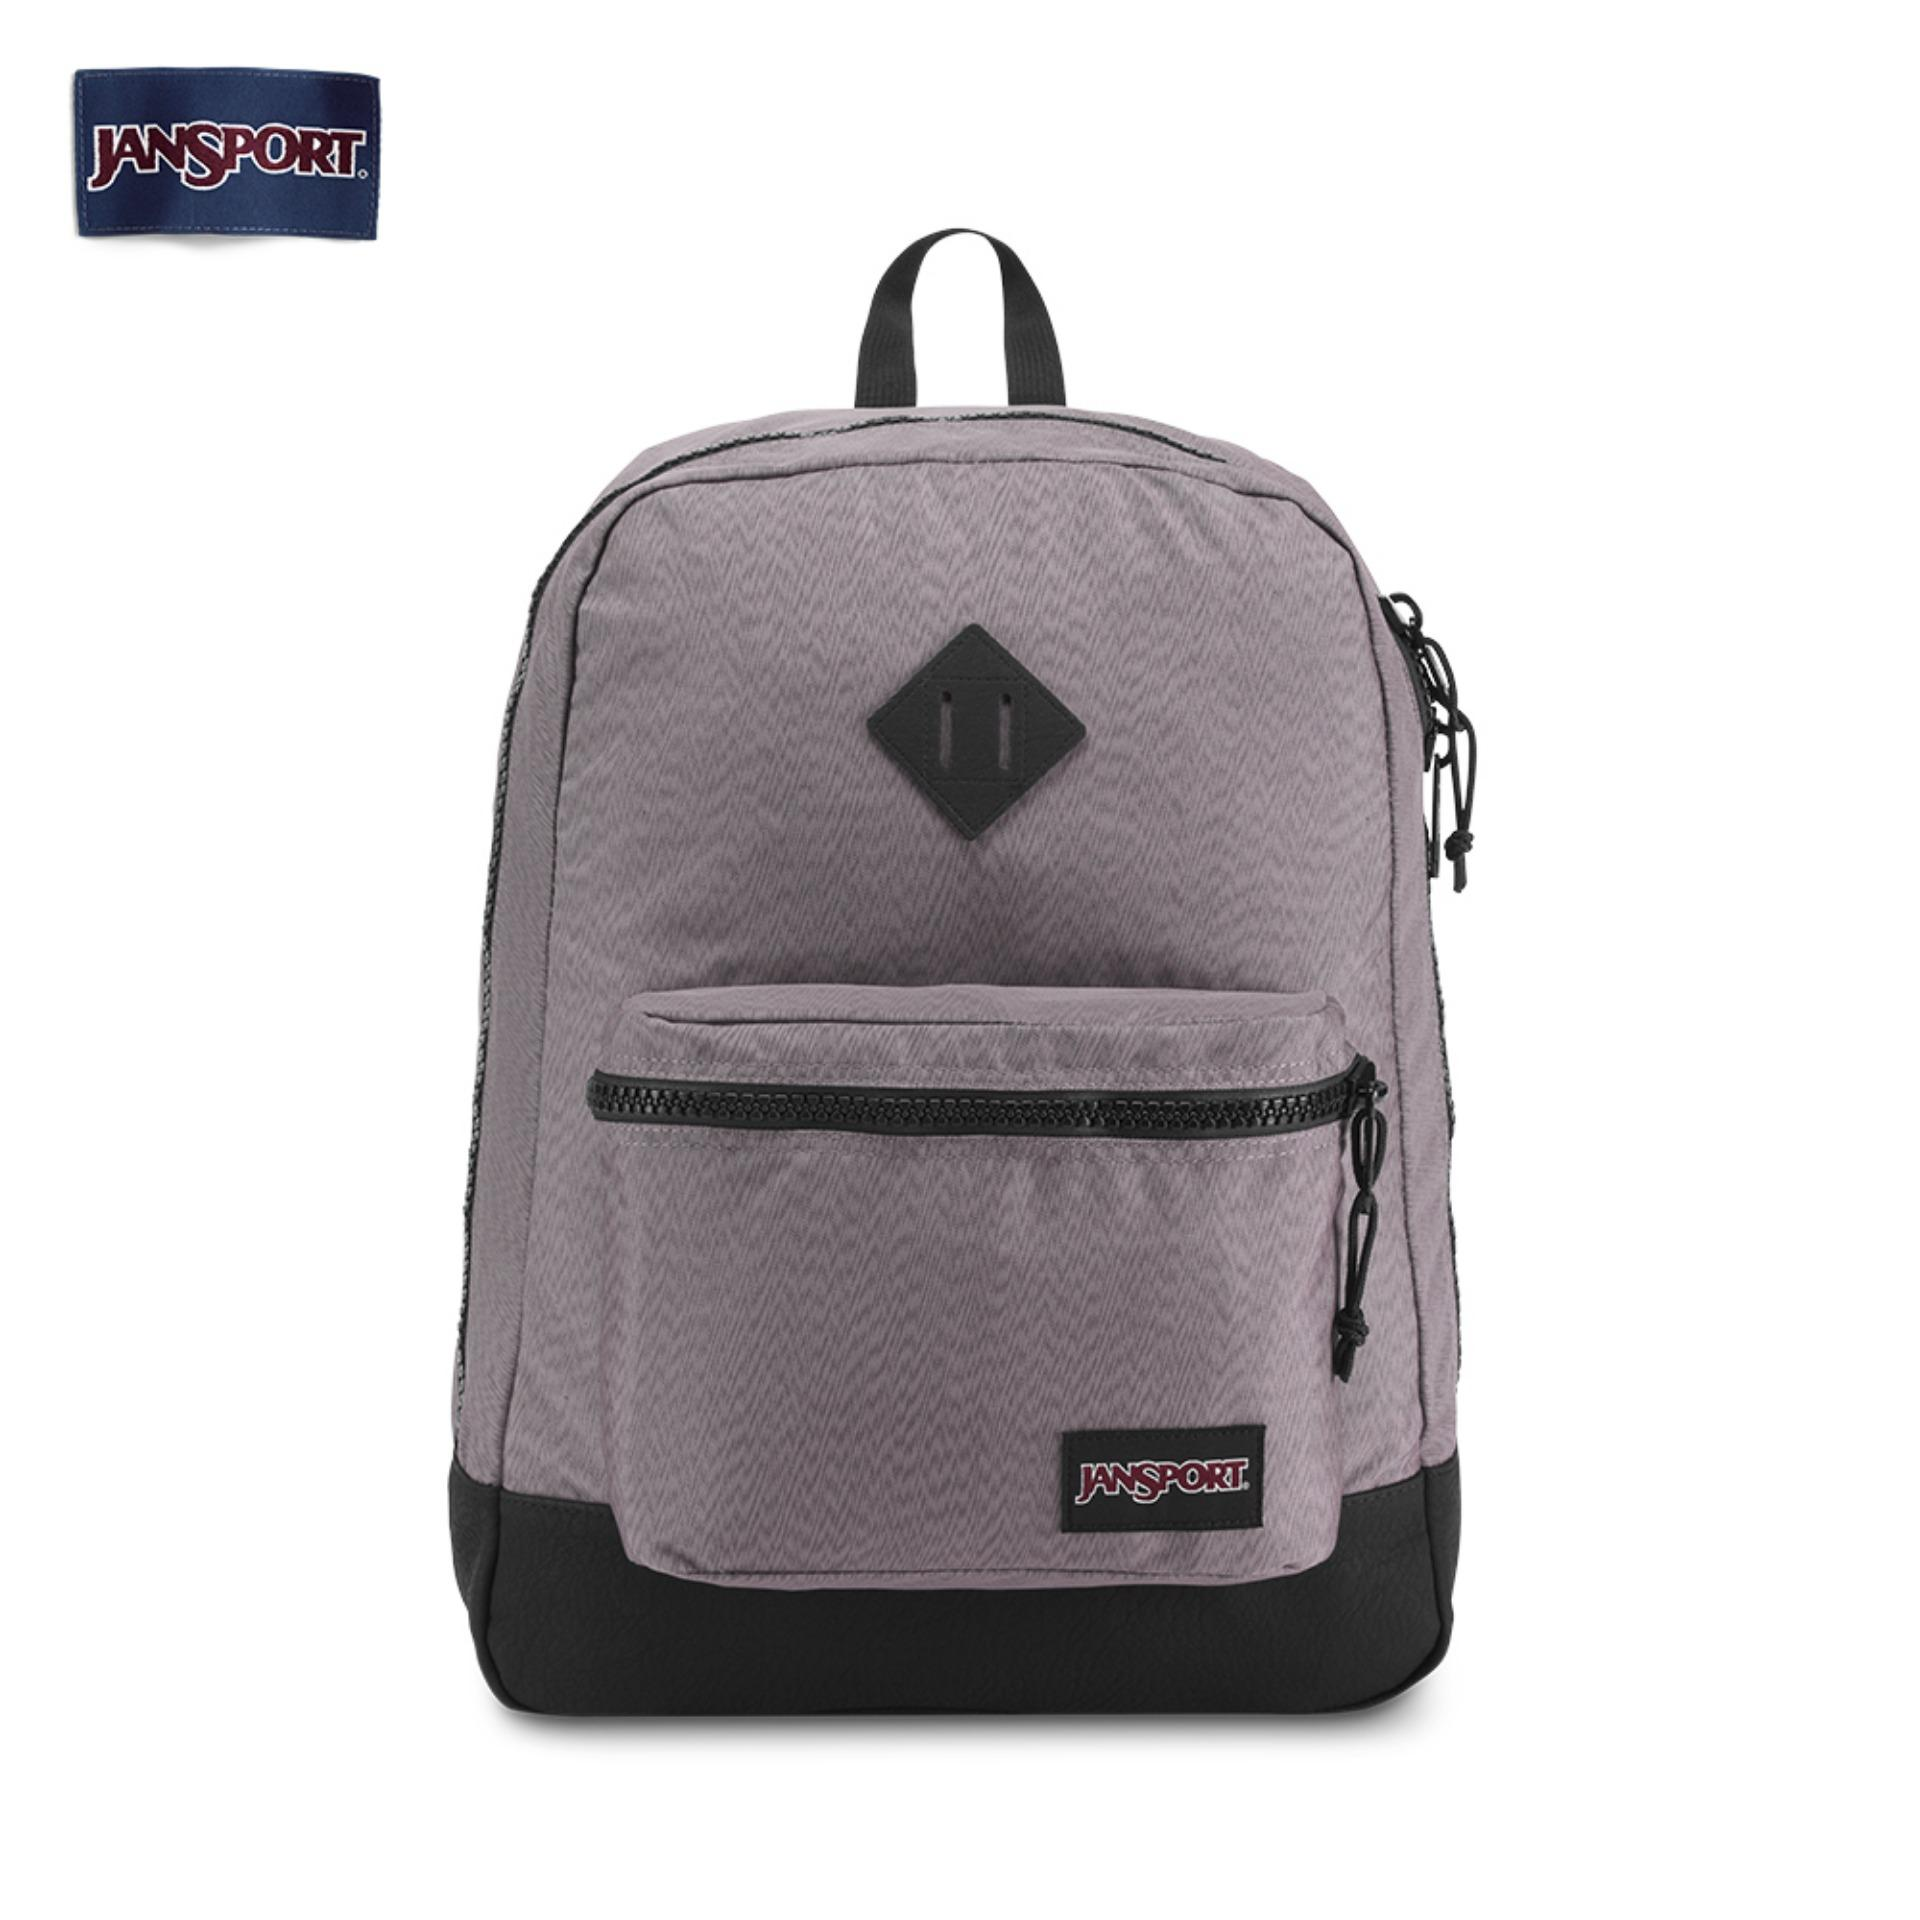 Jansport Unisex SUPER FX Backpack